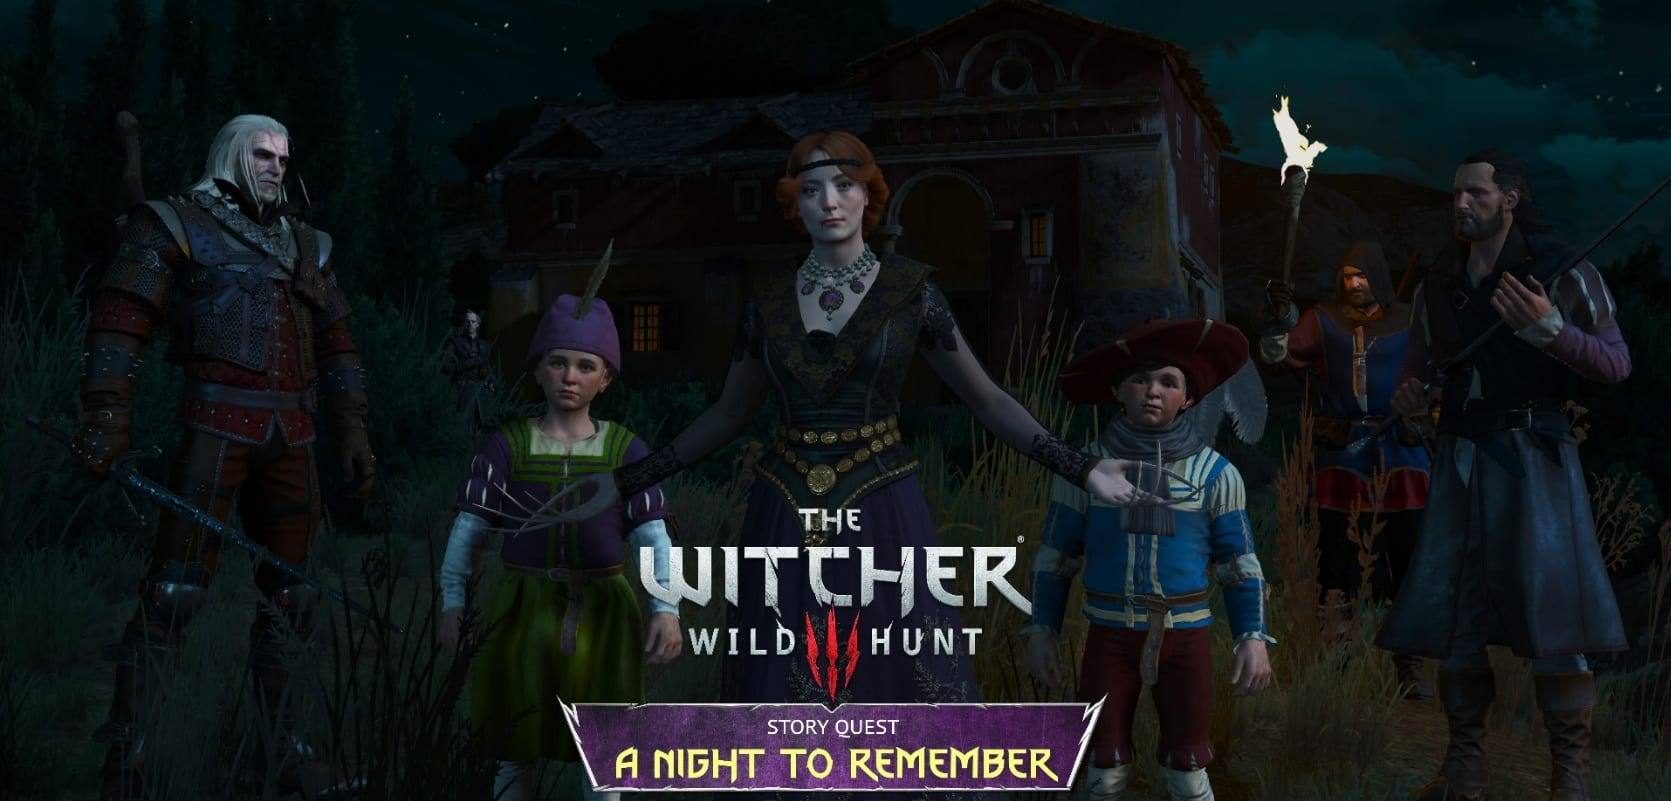 witcher, night to remember